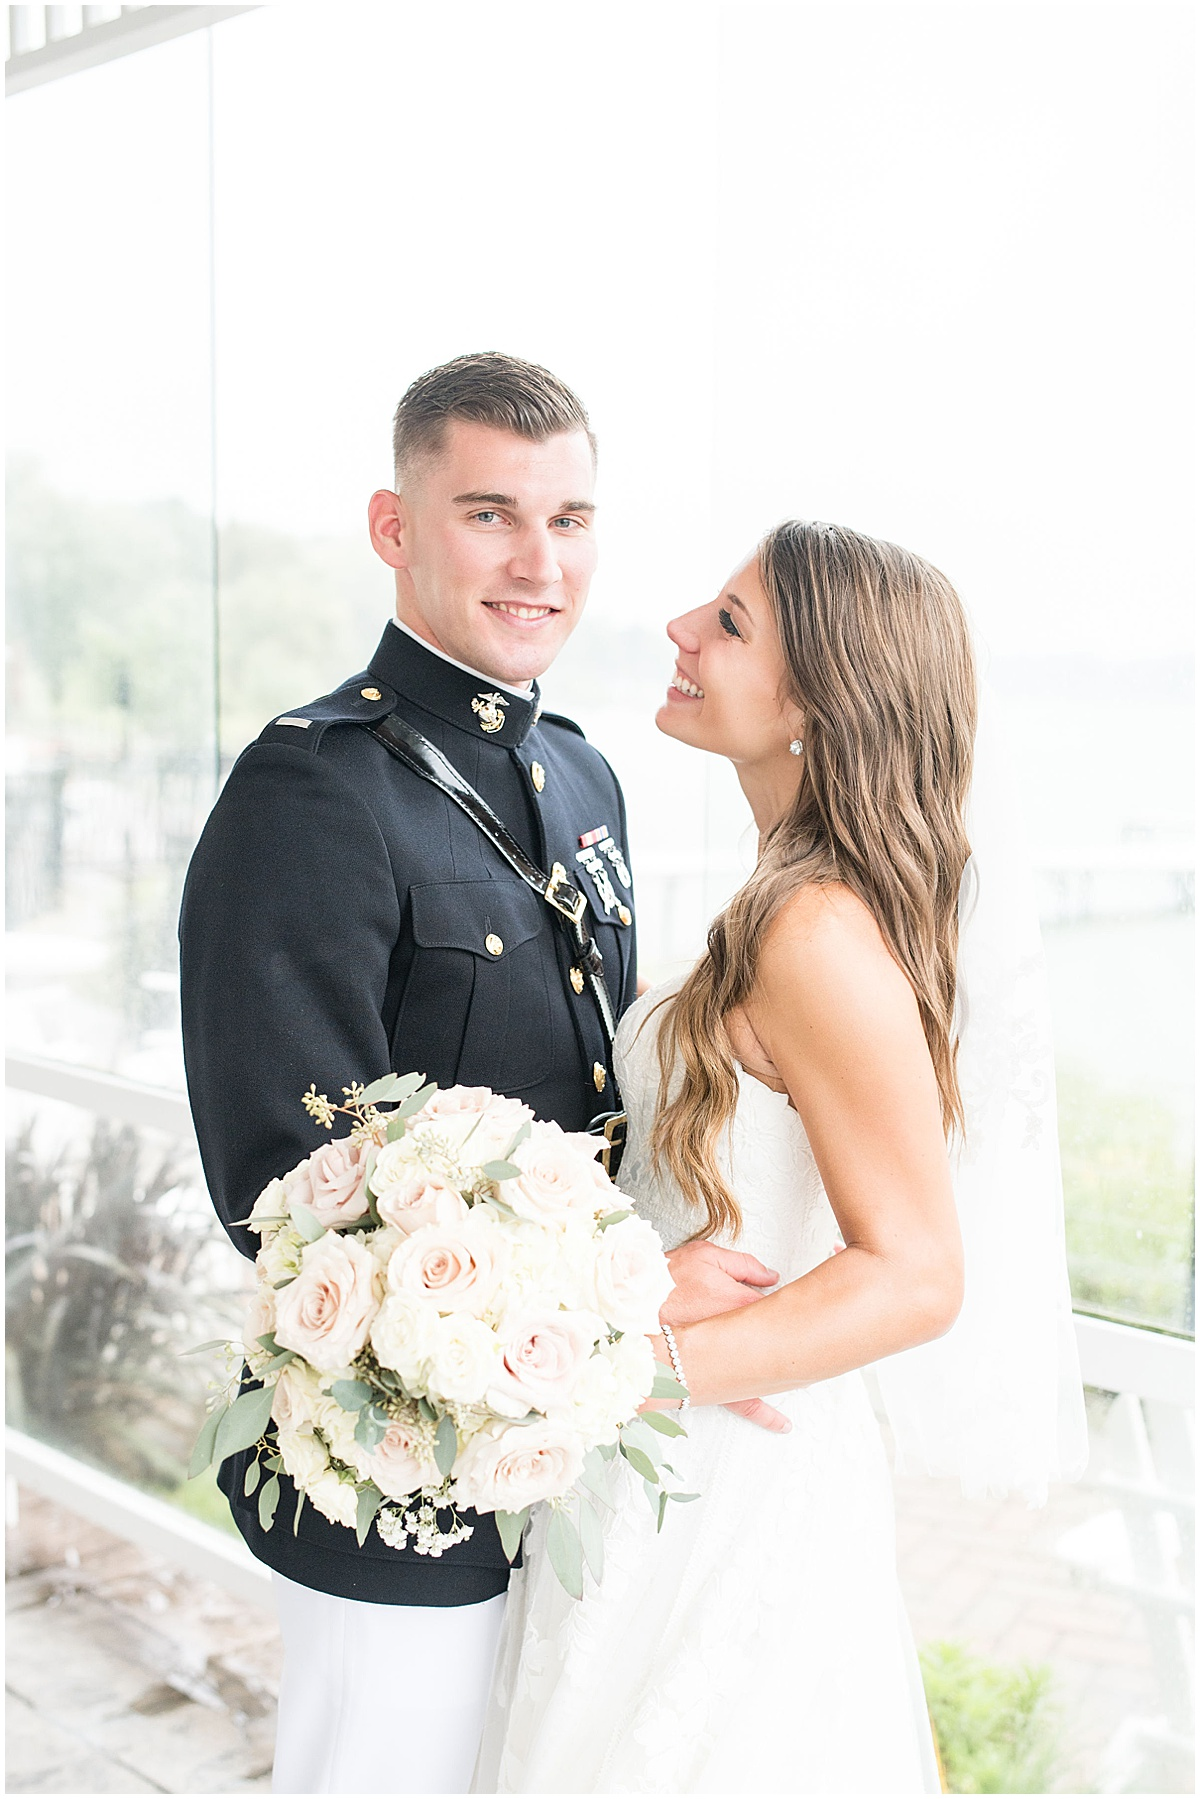 Bride and groom at wedding at The Lighthouse Restaurant in Cedar Lake, Indiana by Victoria Rayburn Photography